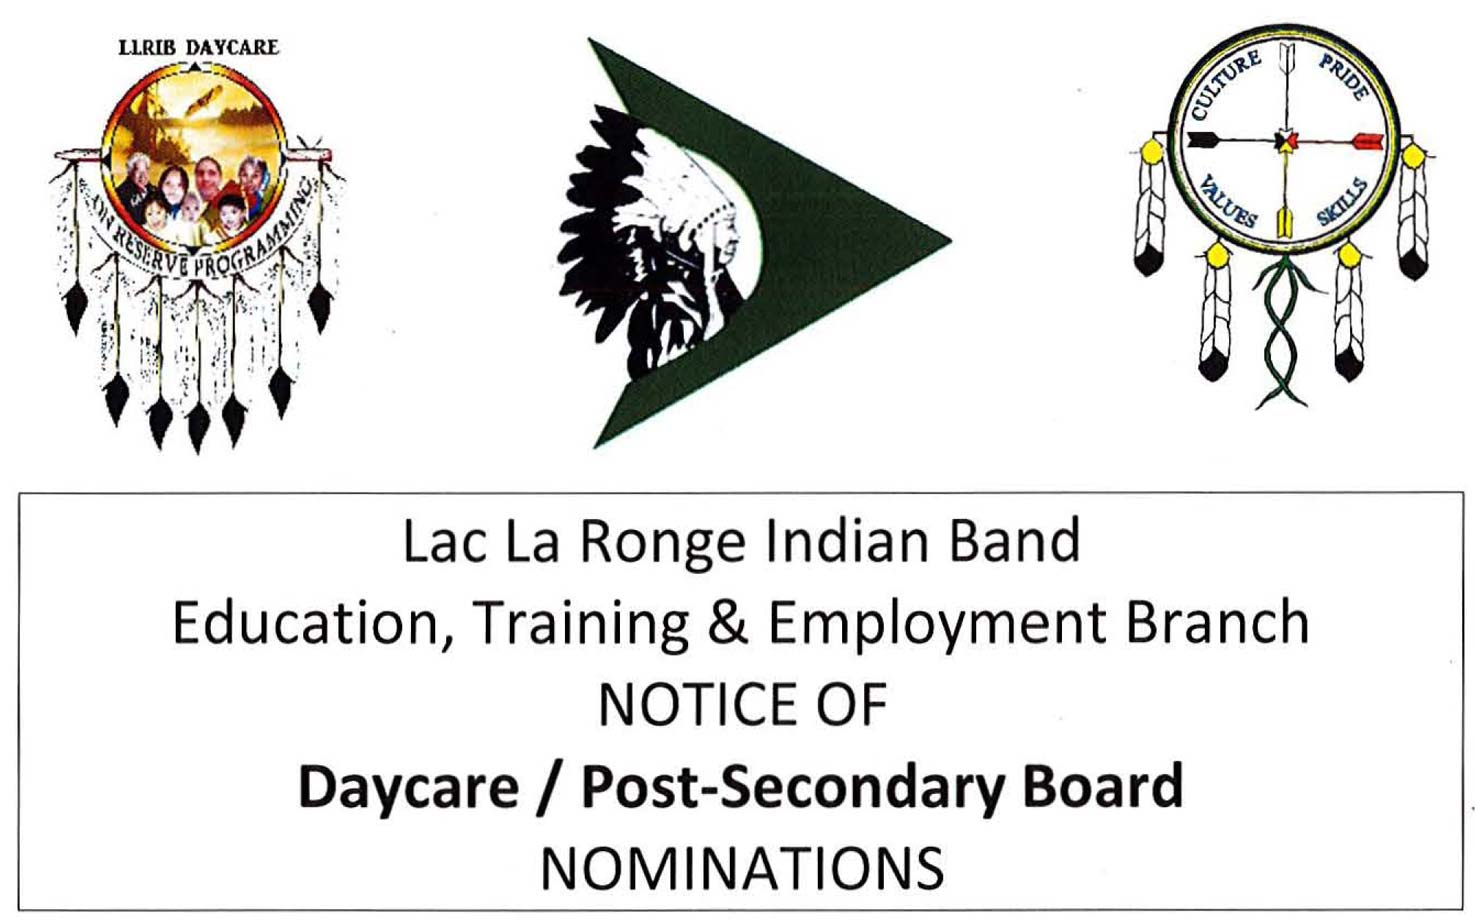 Daycare Post-Secondary Board